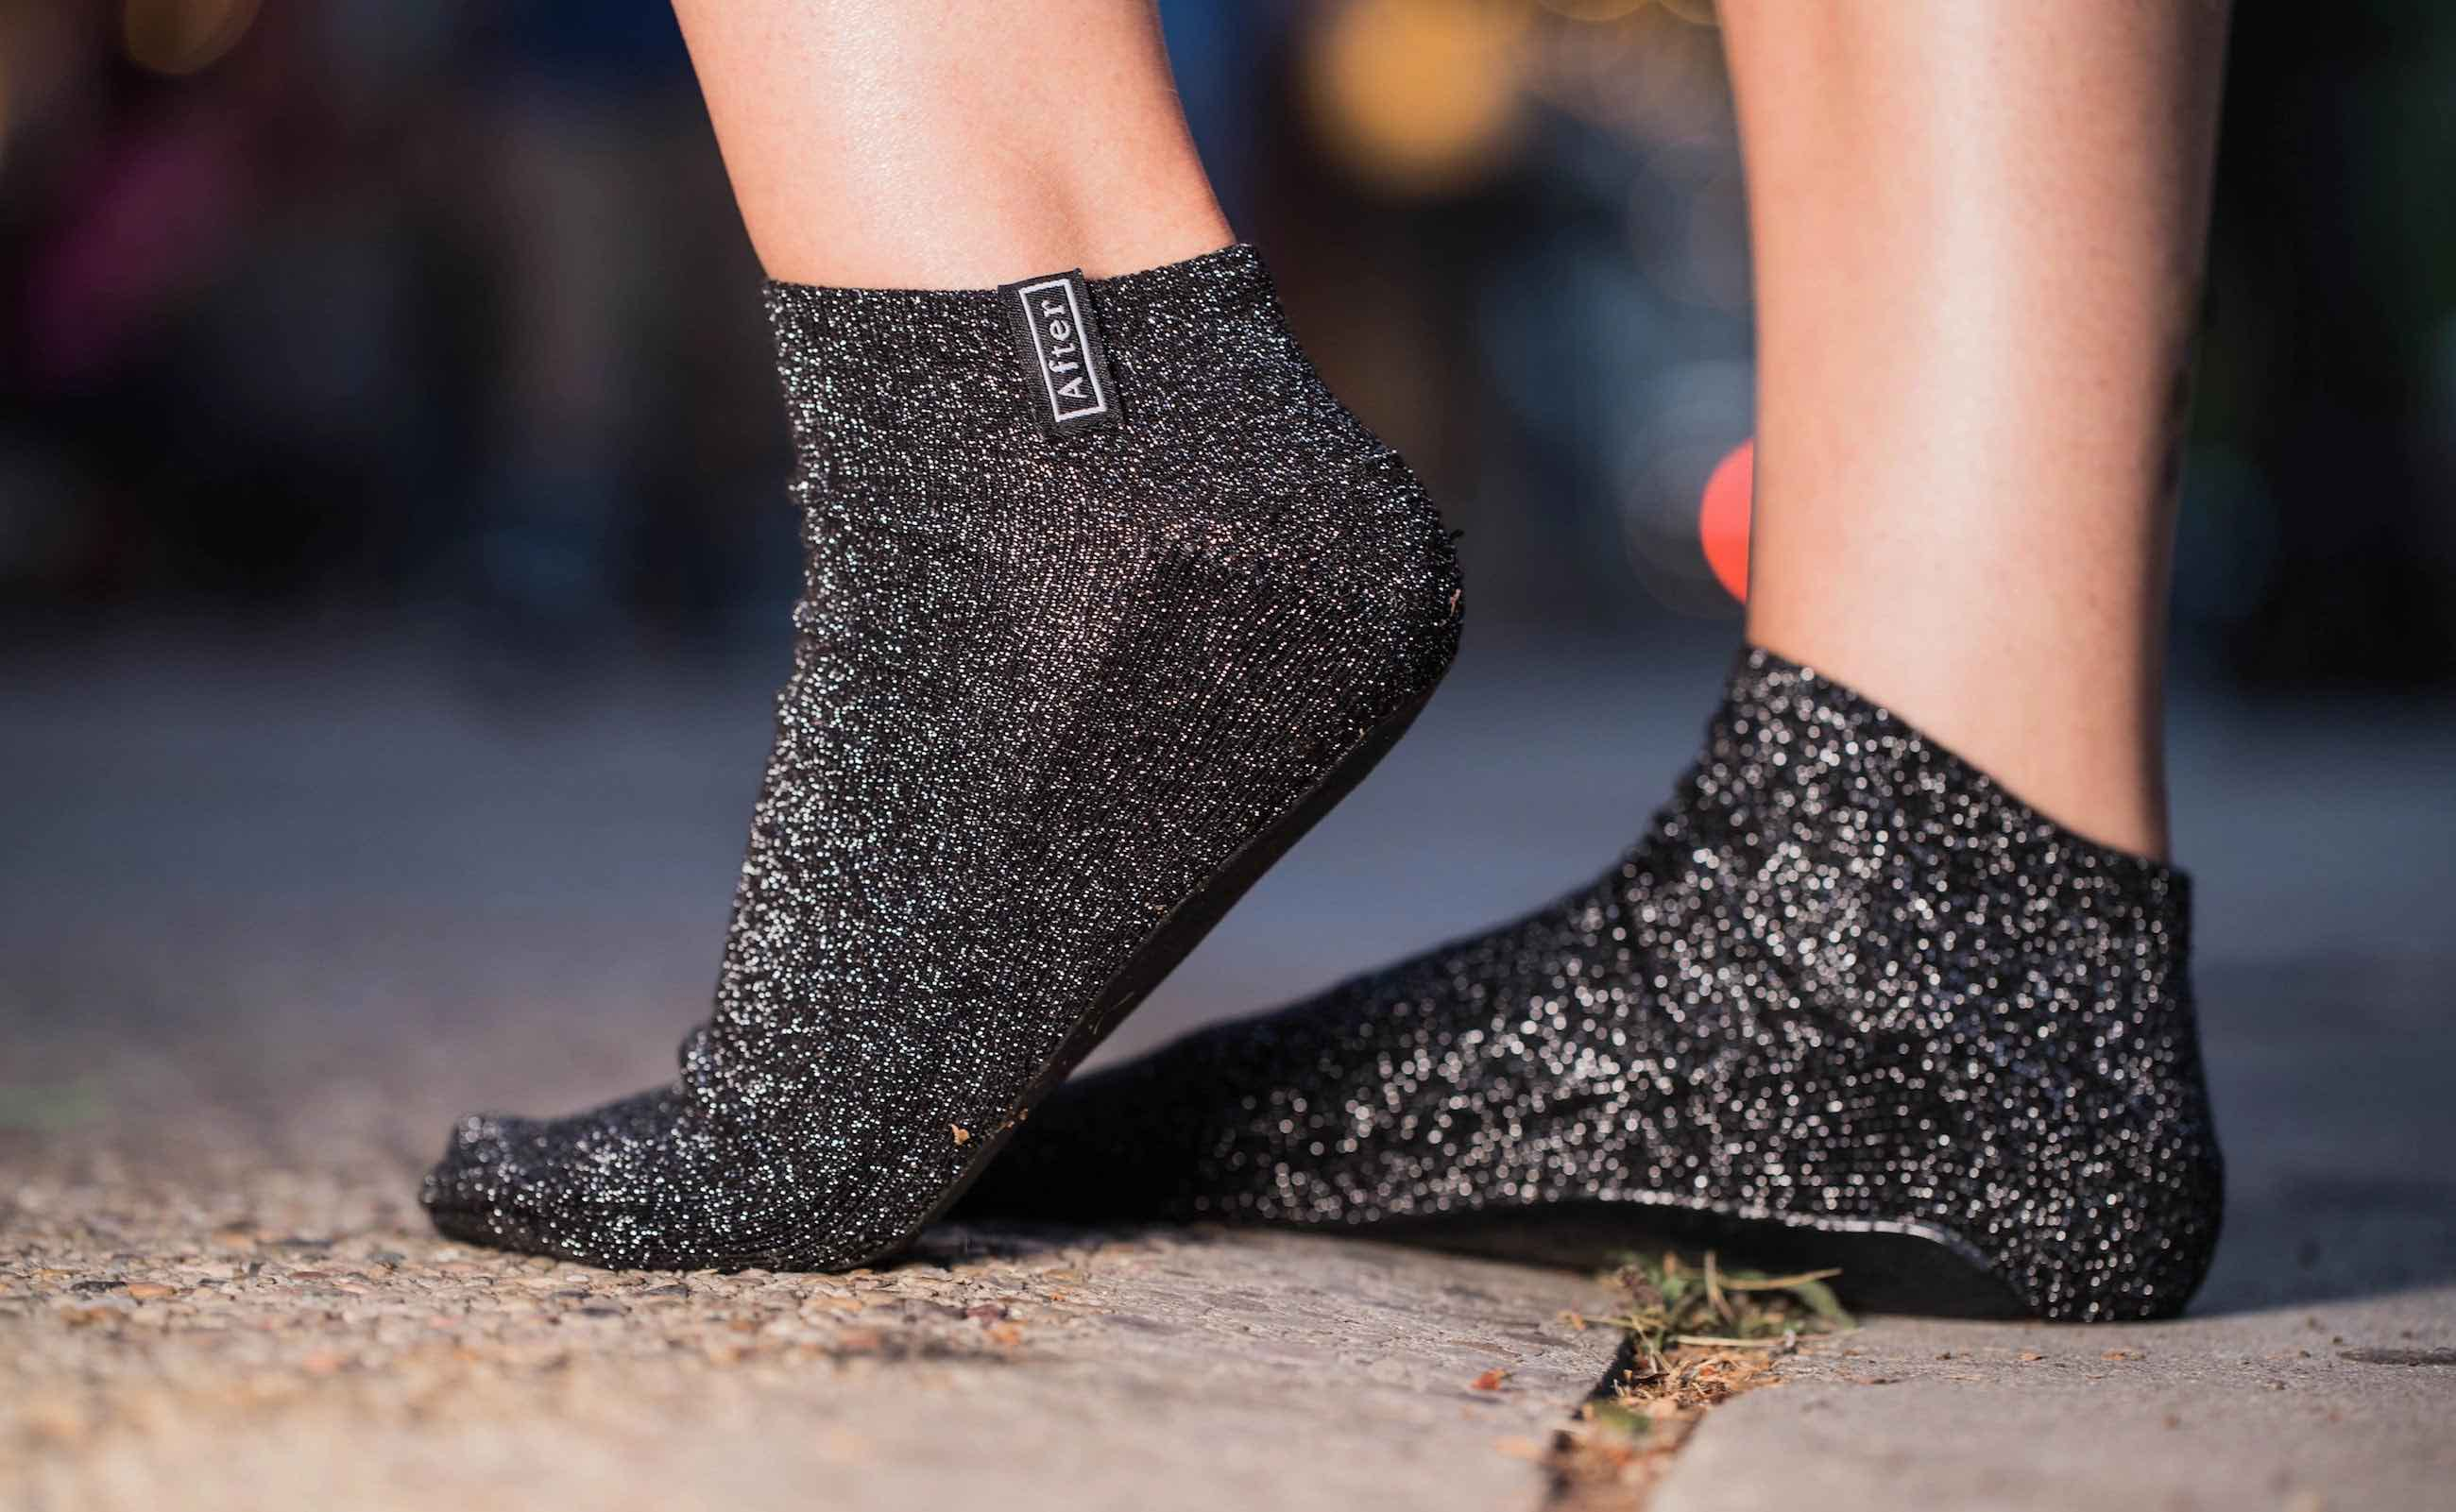 Aftersocks Feet Protecting Night Out Socks save your feet on a night out